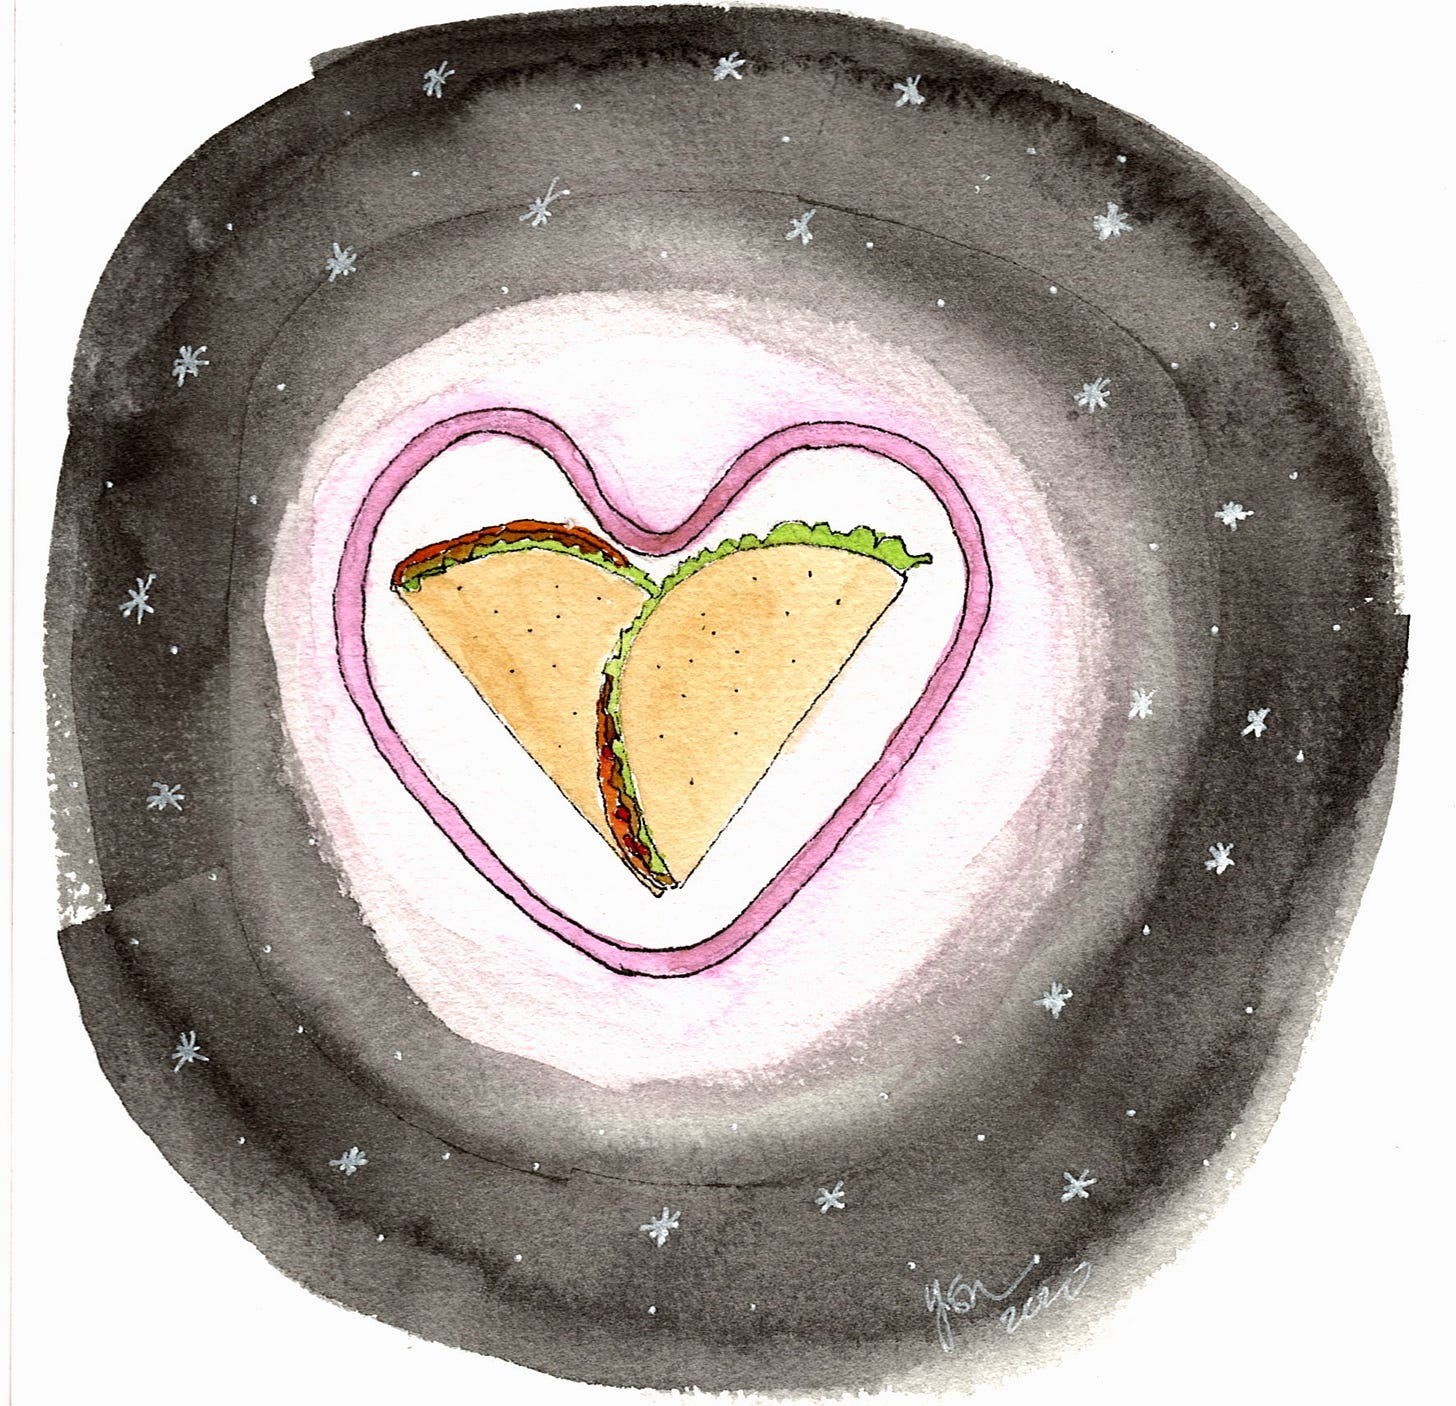 watercolor black background with stars in it surrounding a neon-light style heart surrounding two tacos overlapping to look like a heart.